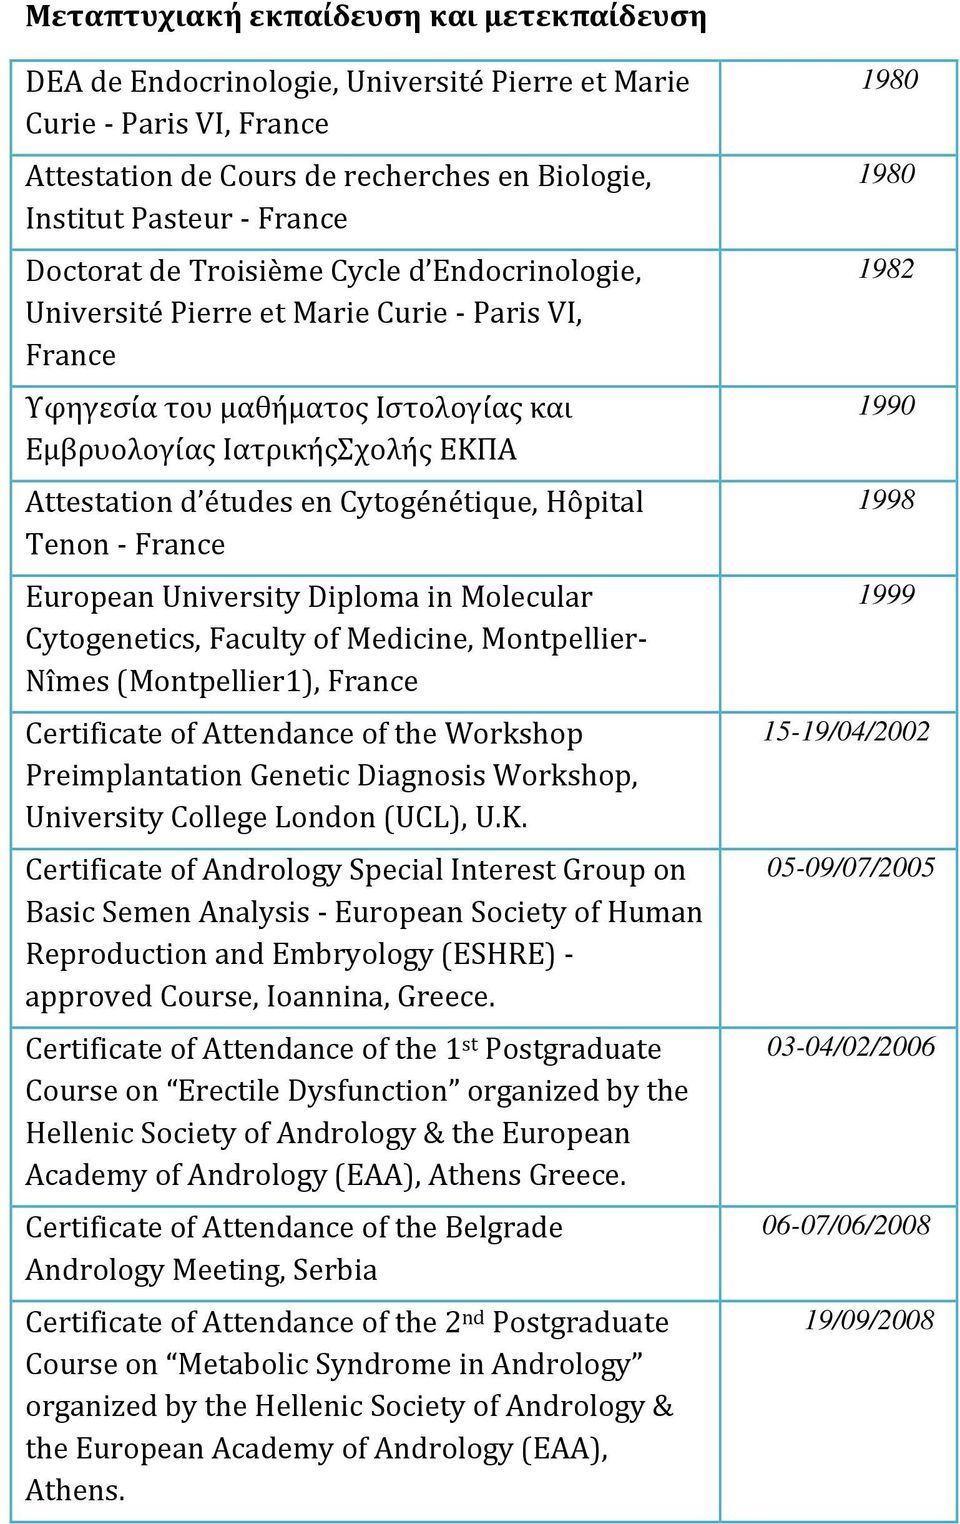 Hôpital Tenon France European University Diploma in Molecular Cytogenetics, Faculty of Medicine, Montpellier Nîmes (Montpellier1), France Certificate of Attendance of the Workshop Preimplantation